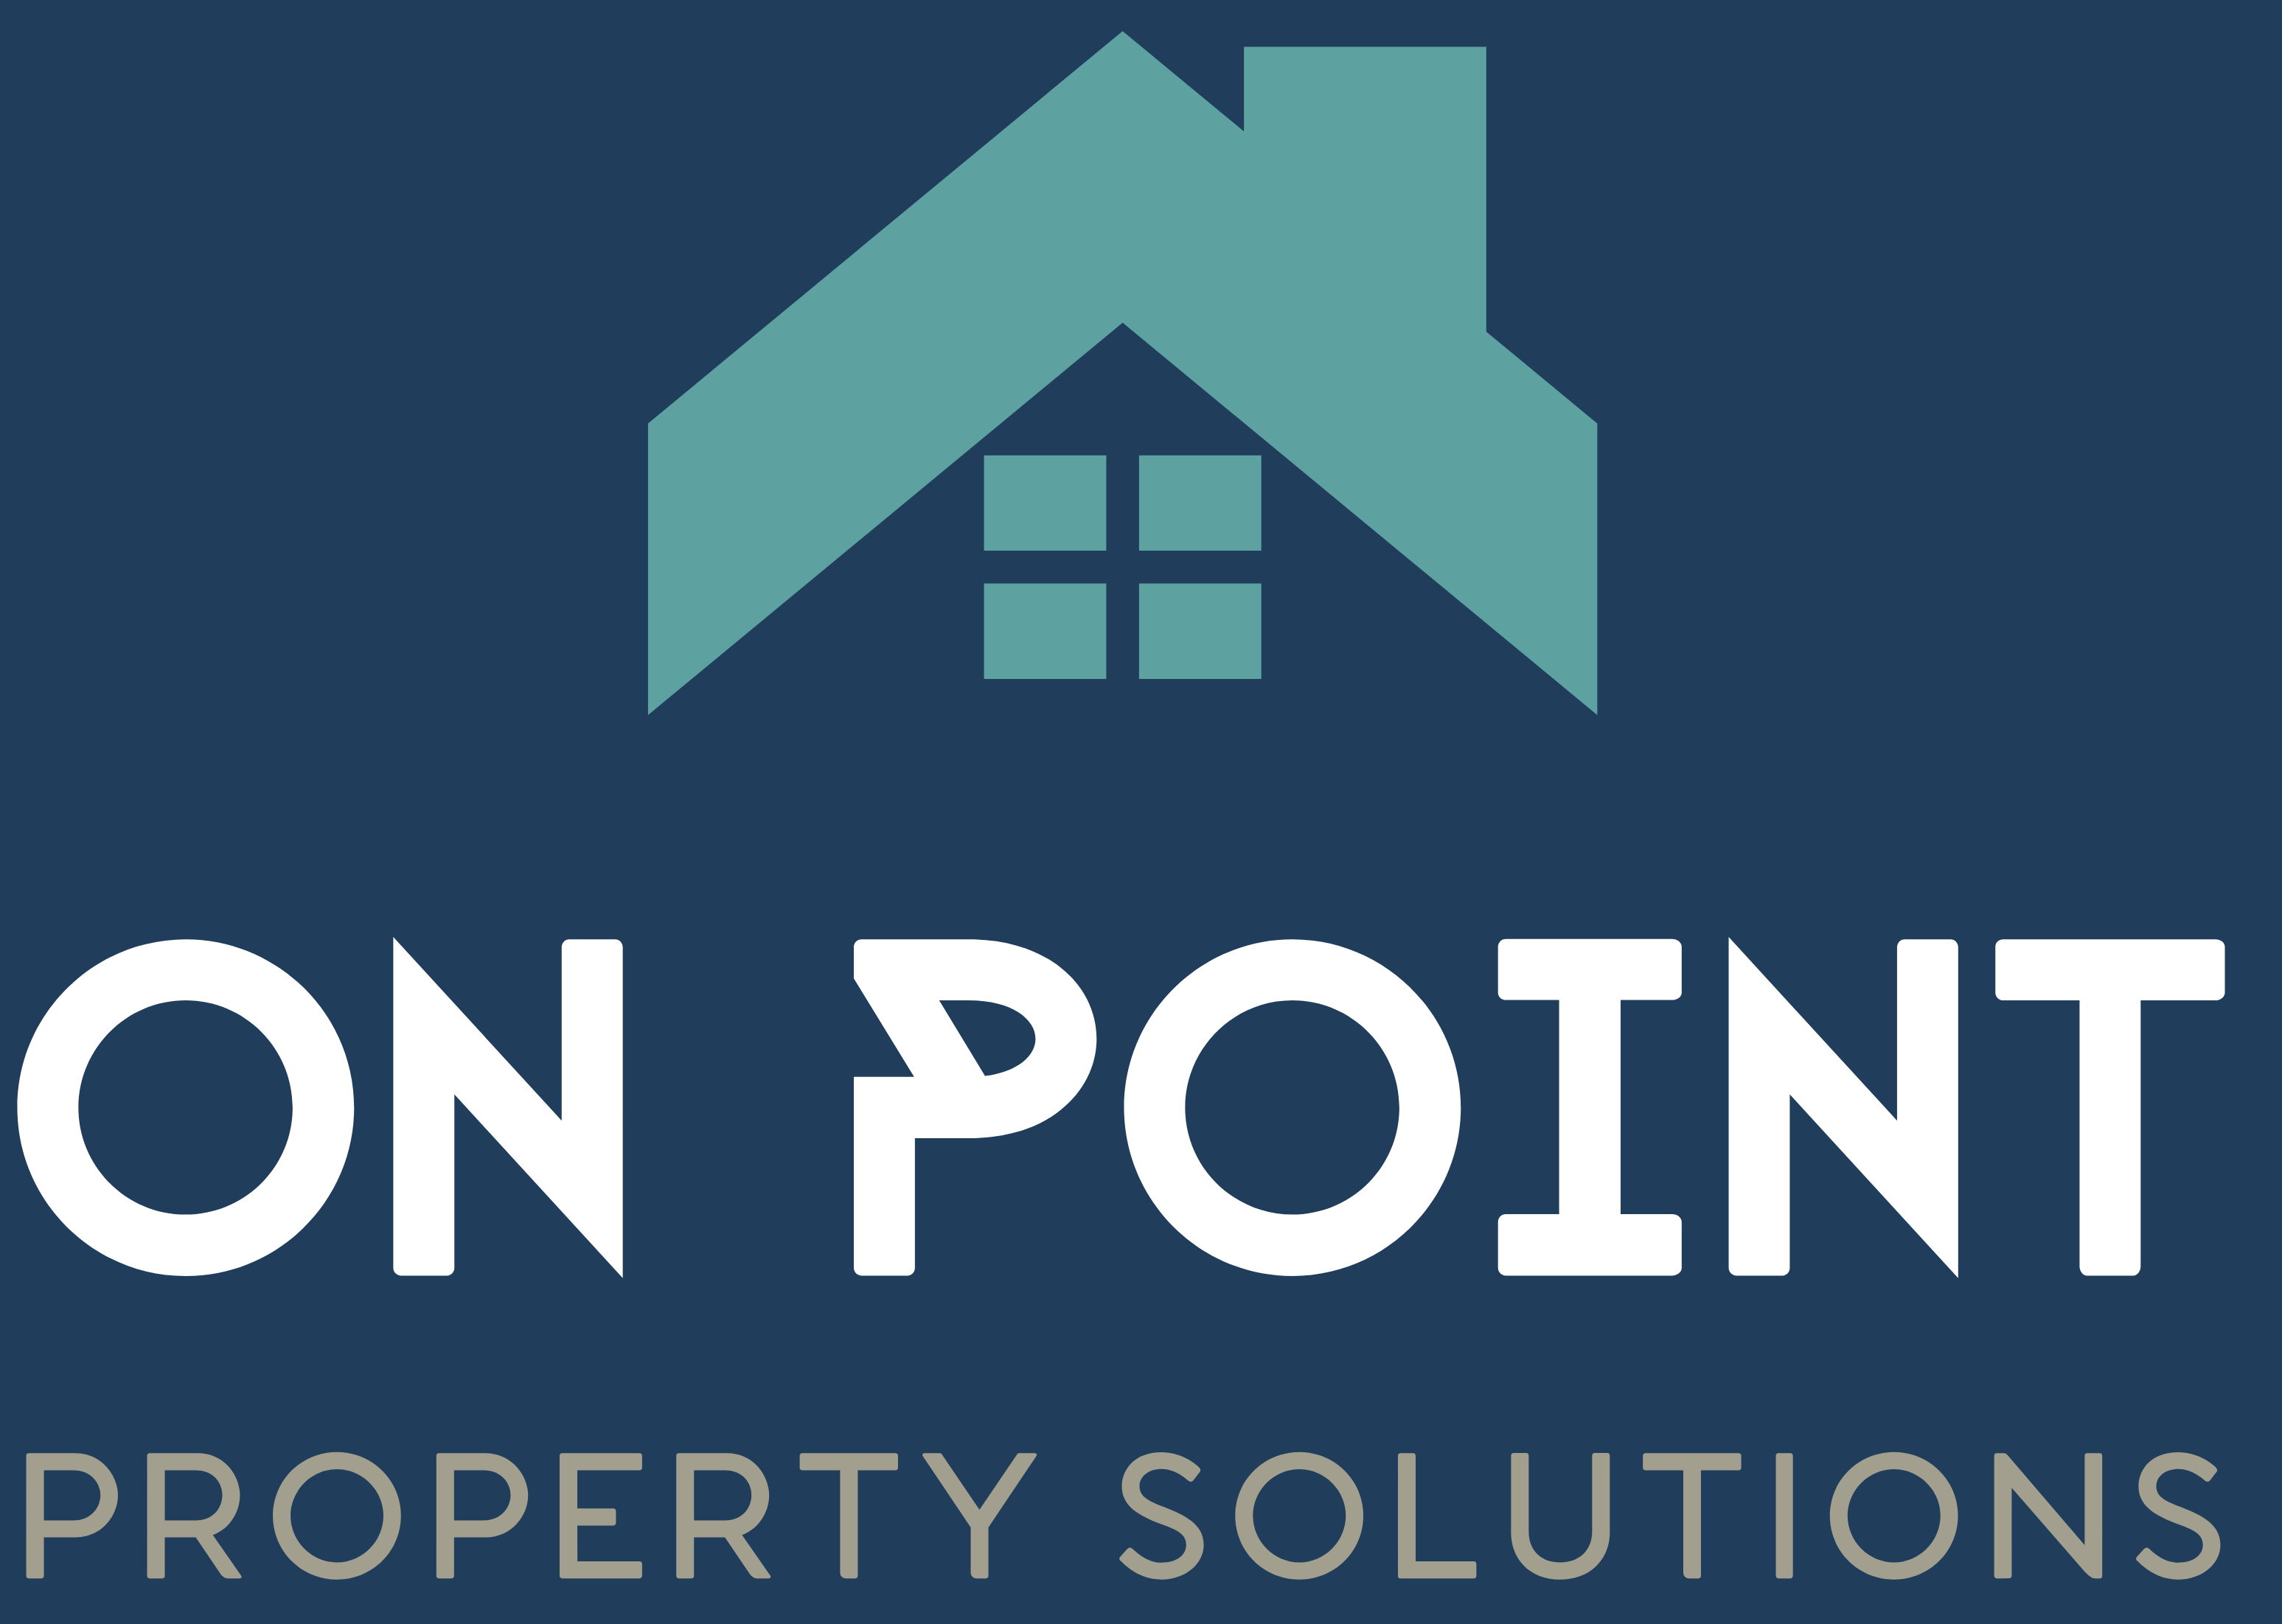 On Point Property Solutions